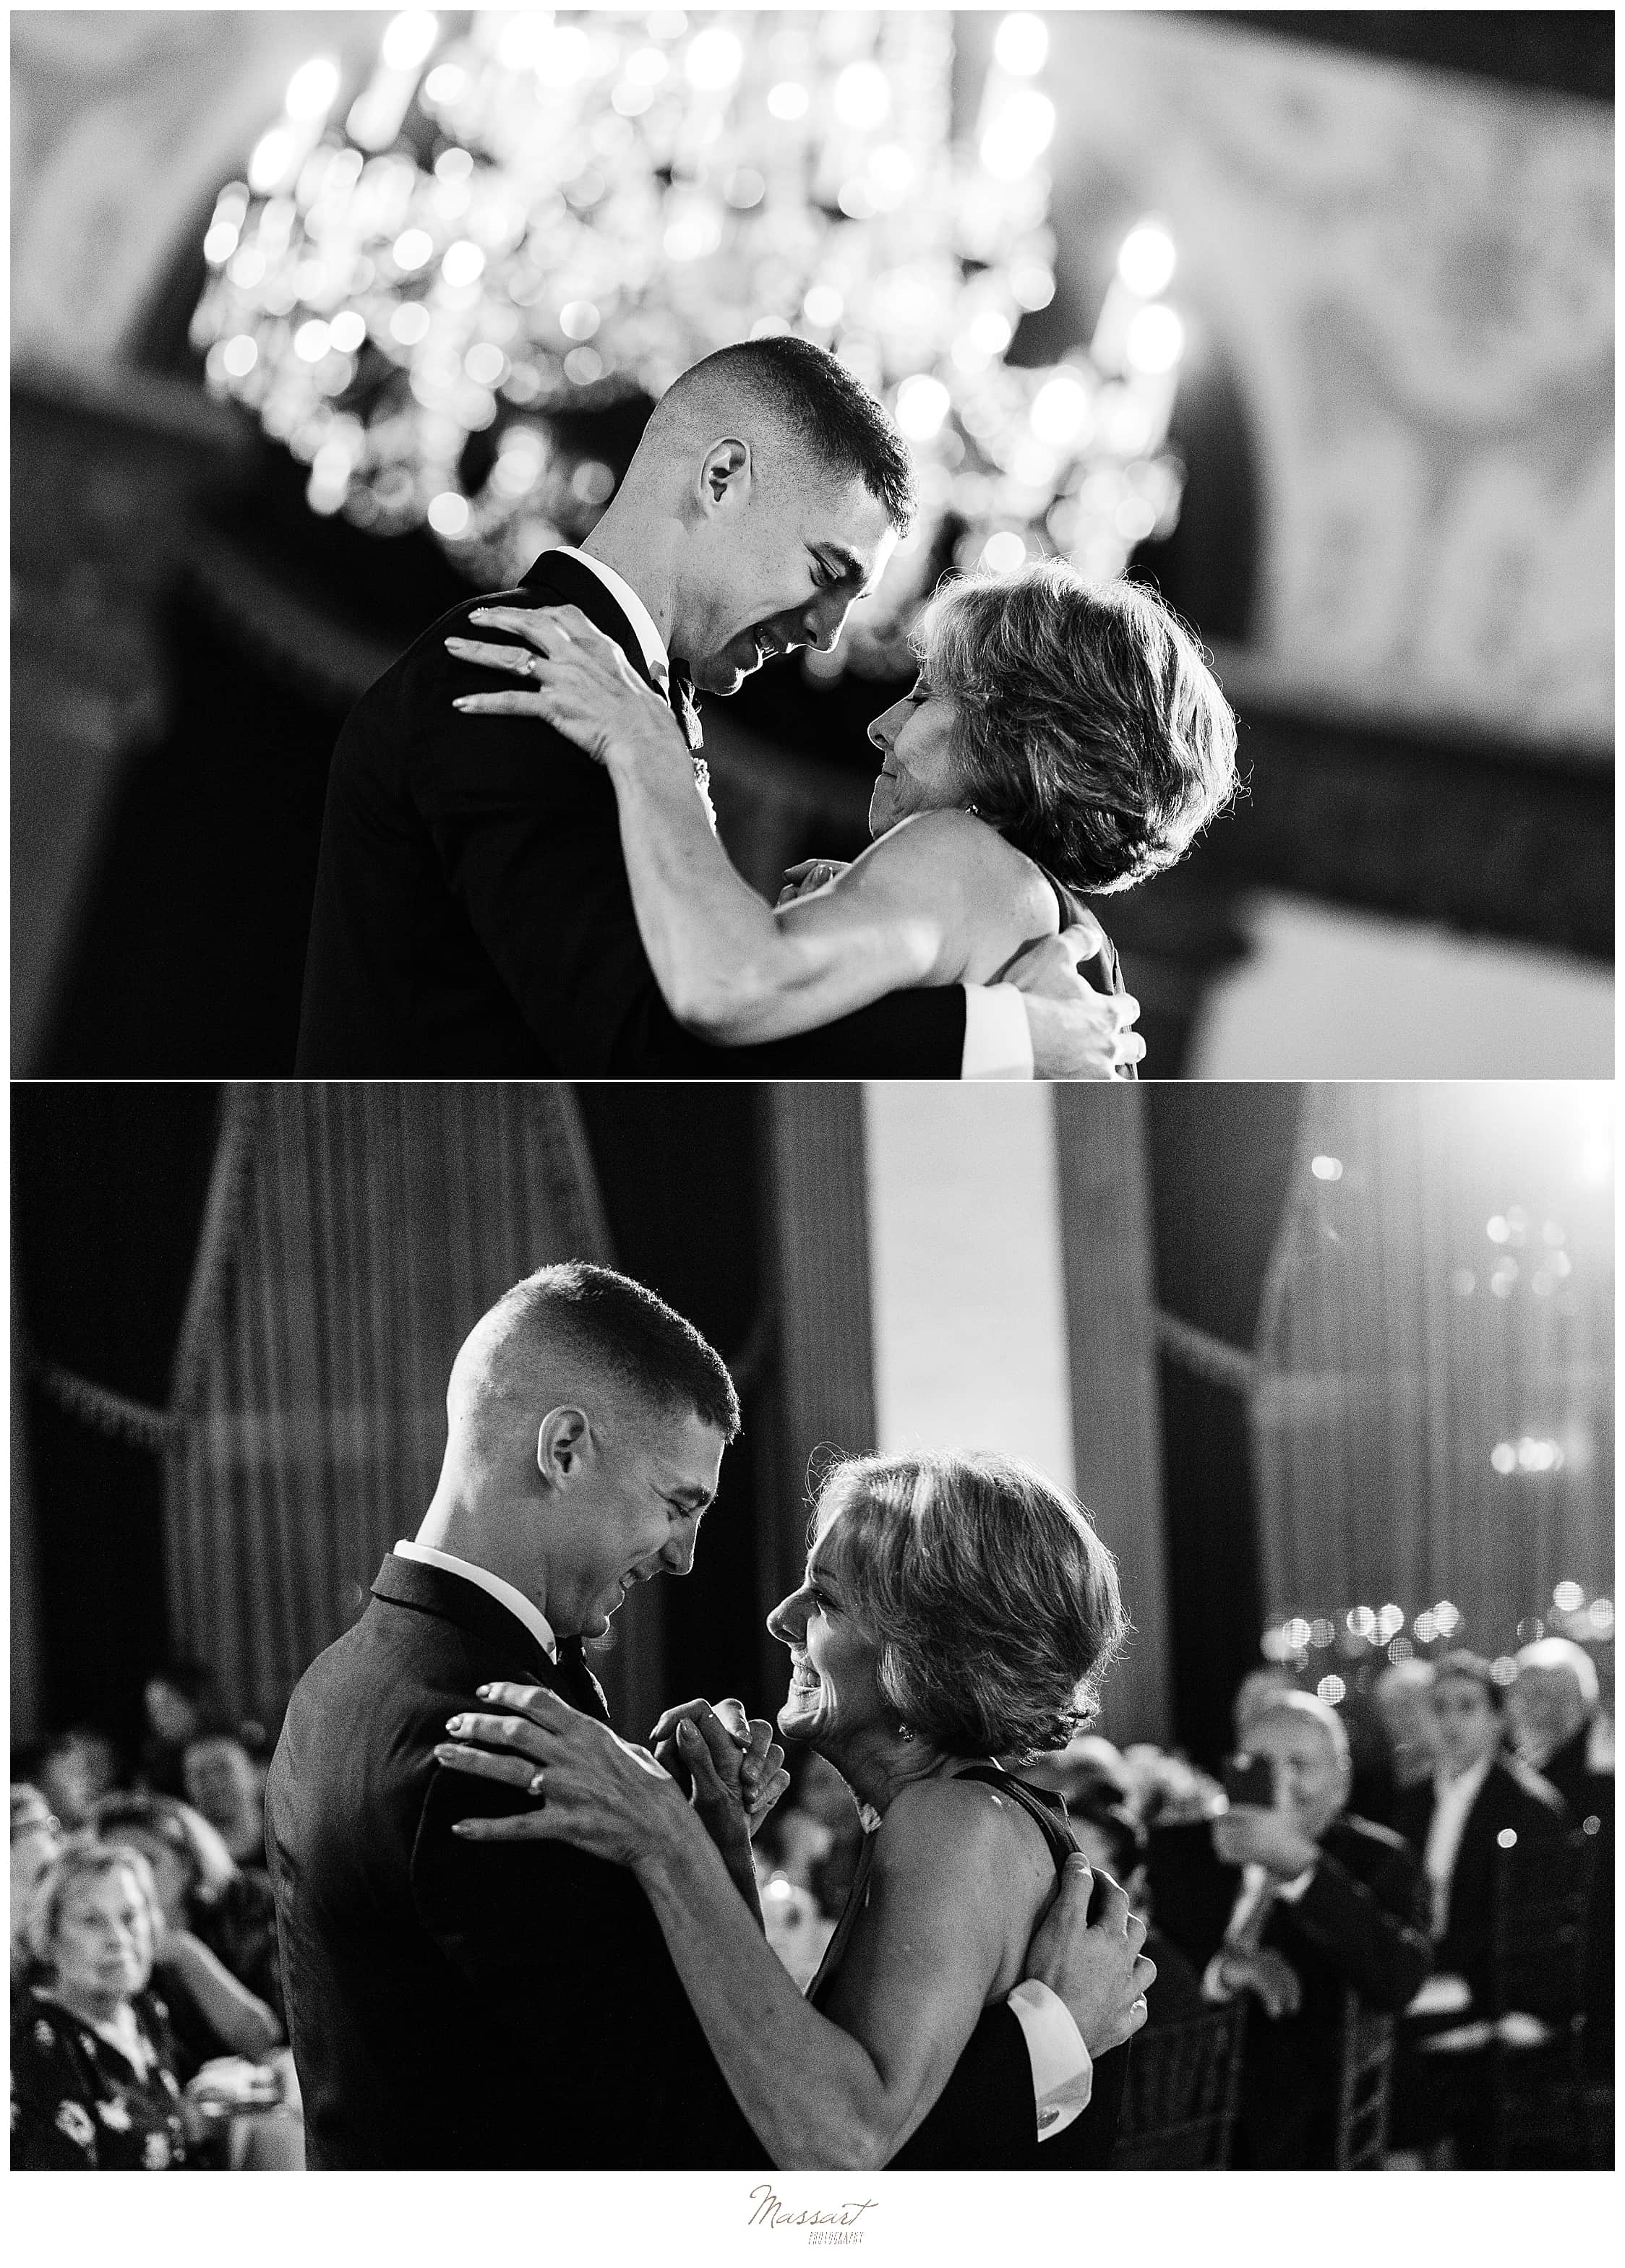 mother-son dances at Providence RI wedding photographed by wedding photographers Massart Photography